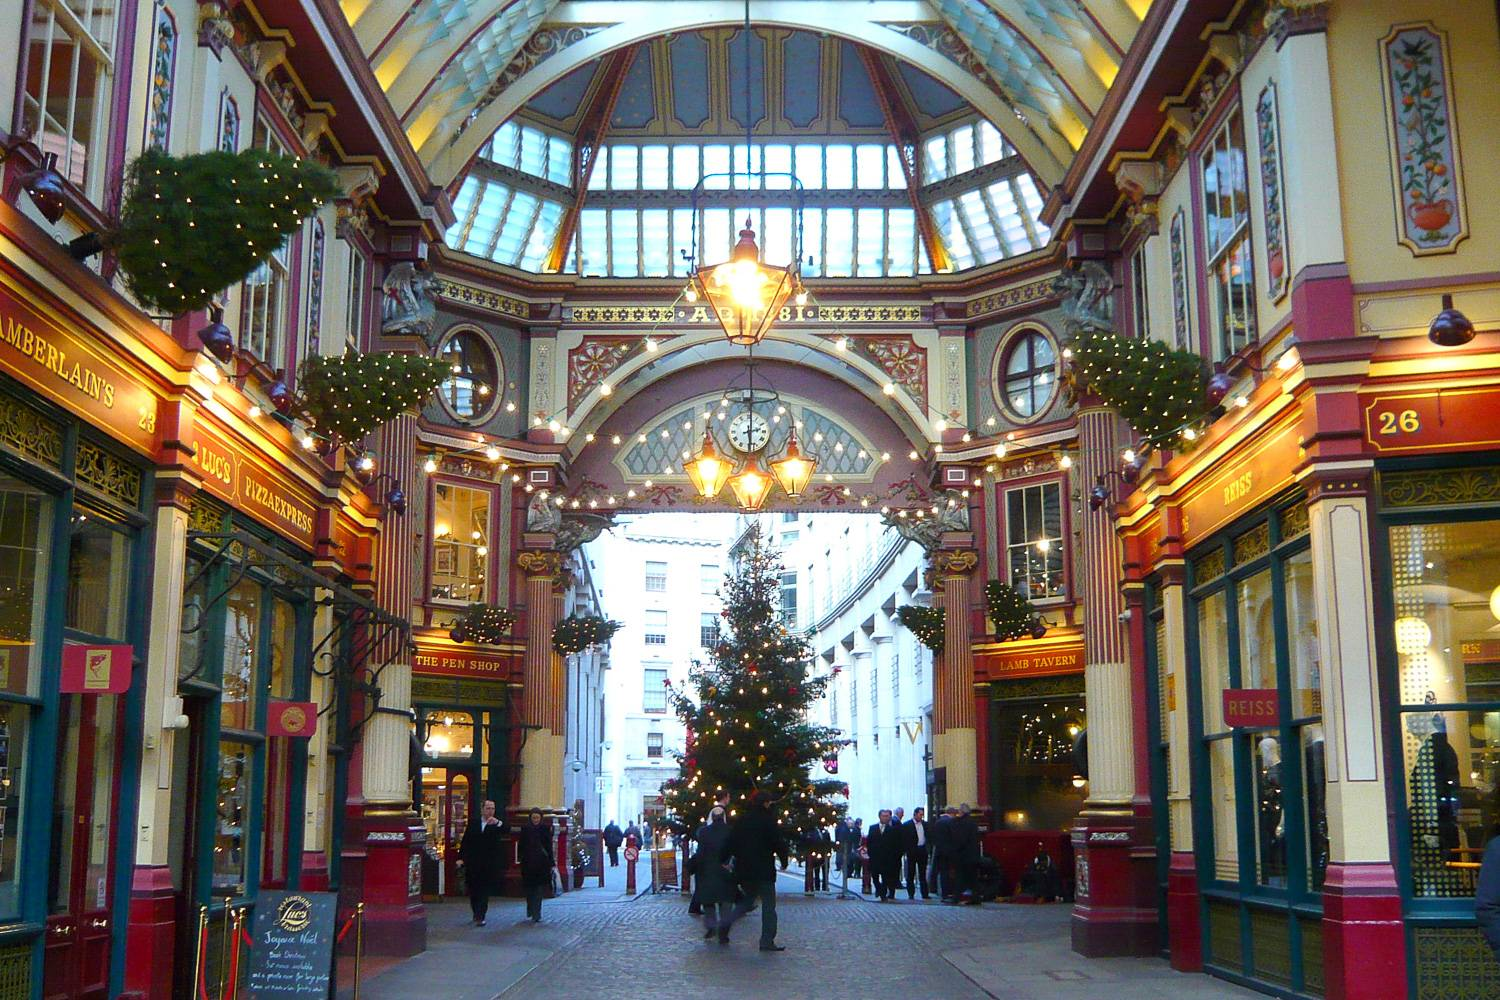 Image of Leadenhall Market decorated for Christmas with lights and Christmas trees.